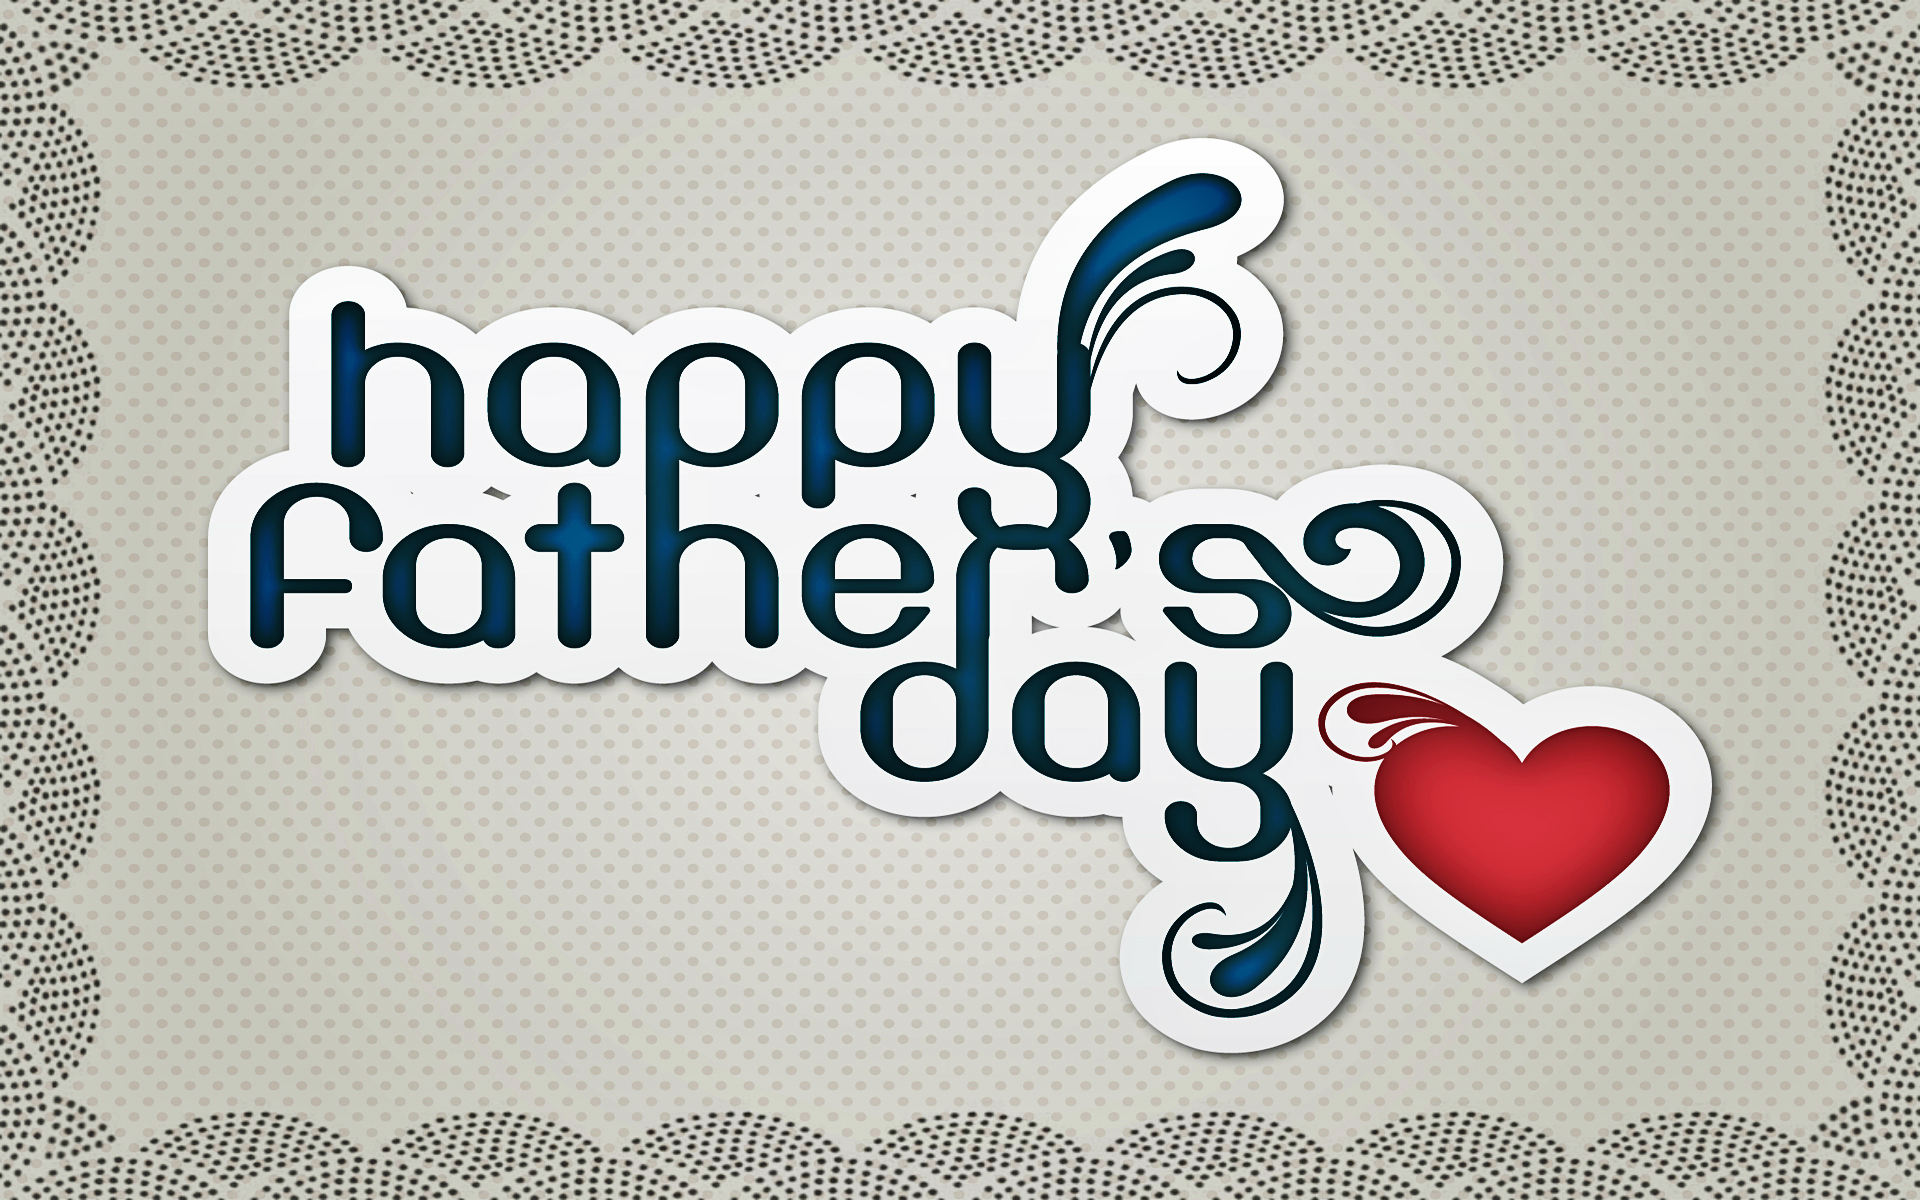 Fathers Day DP For Whatsapp Pictures, Wallpaper